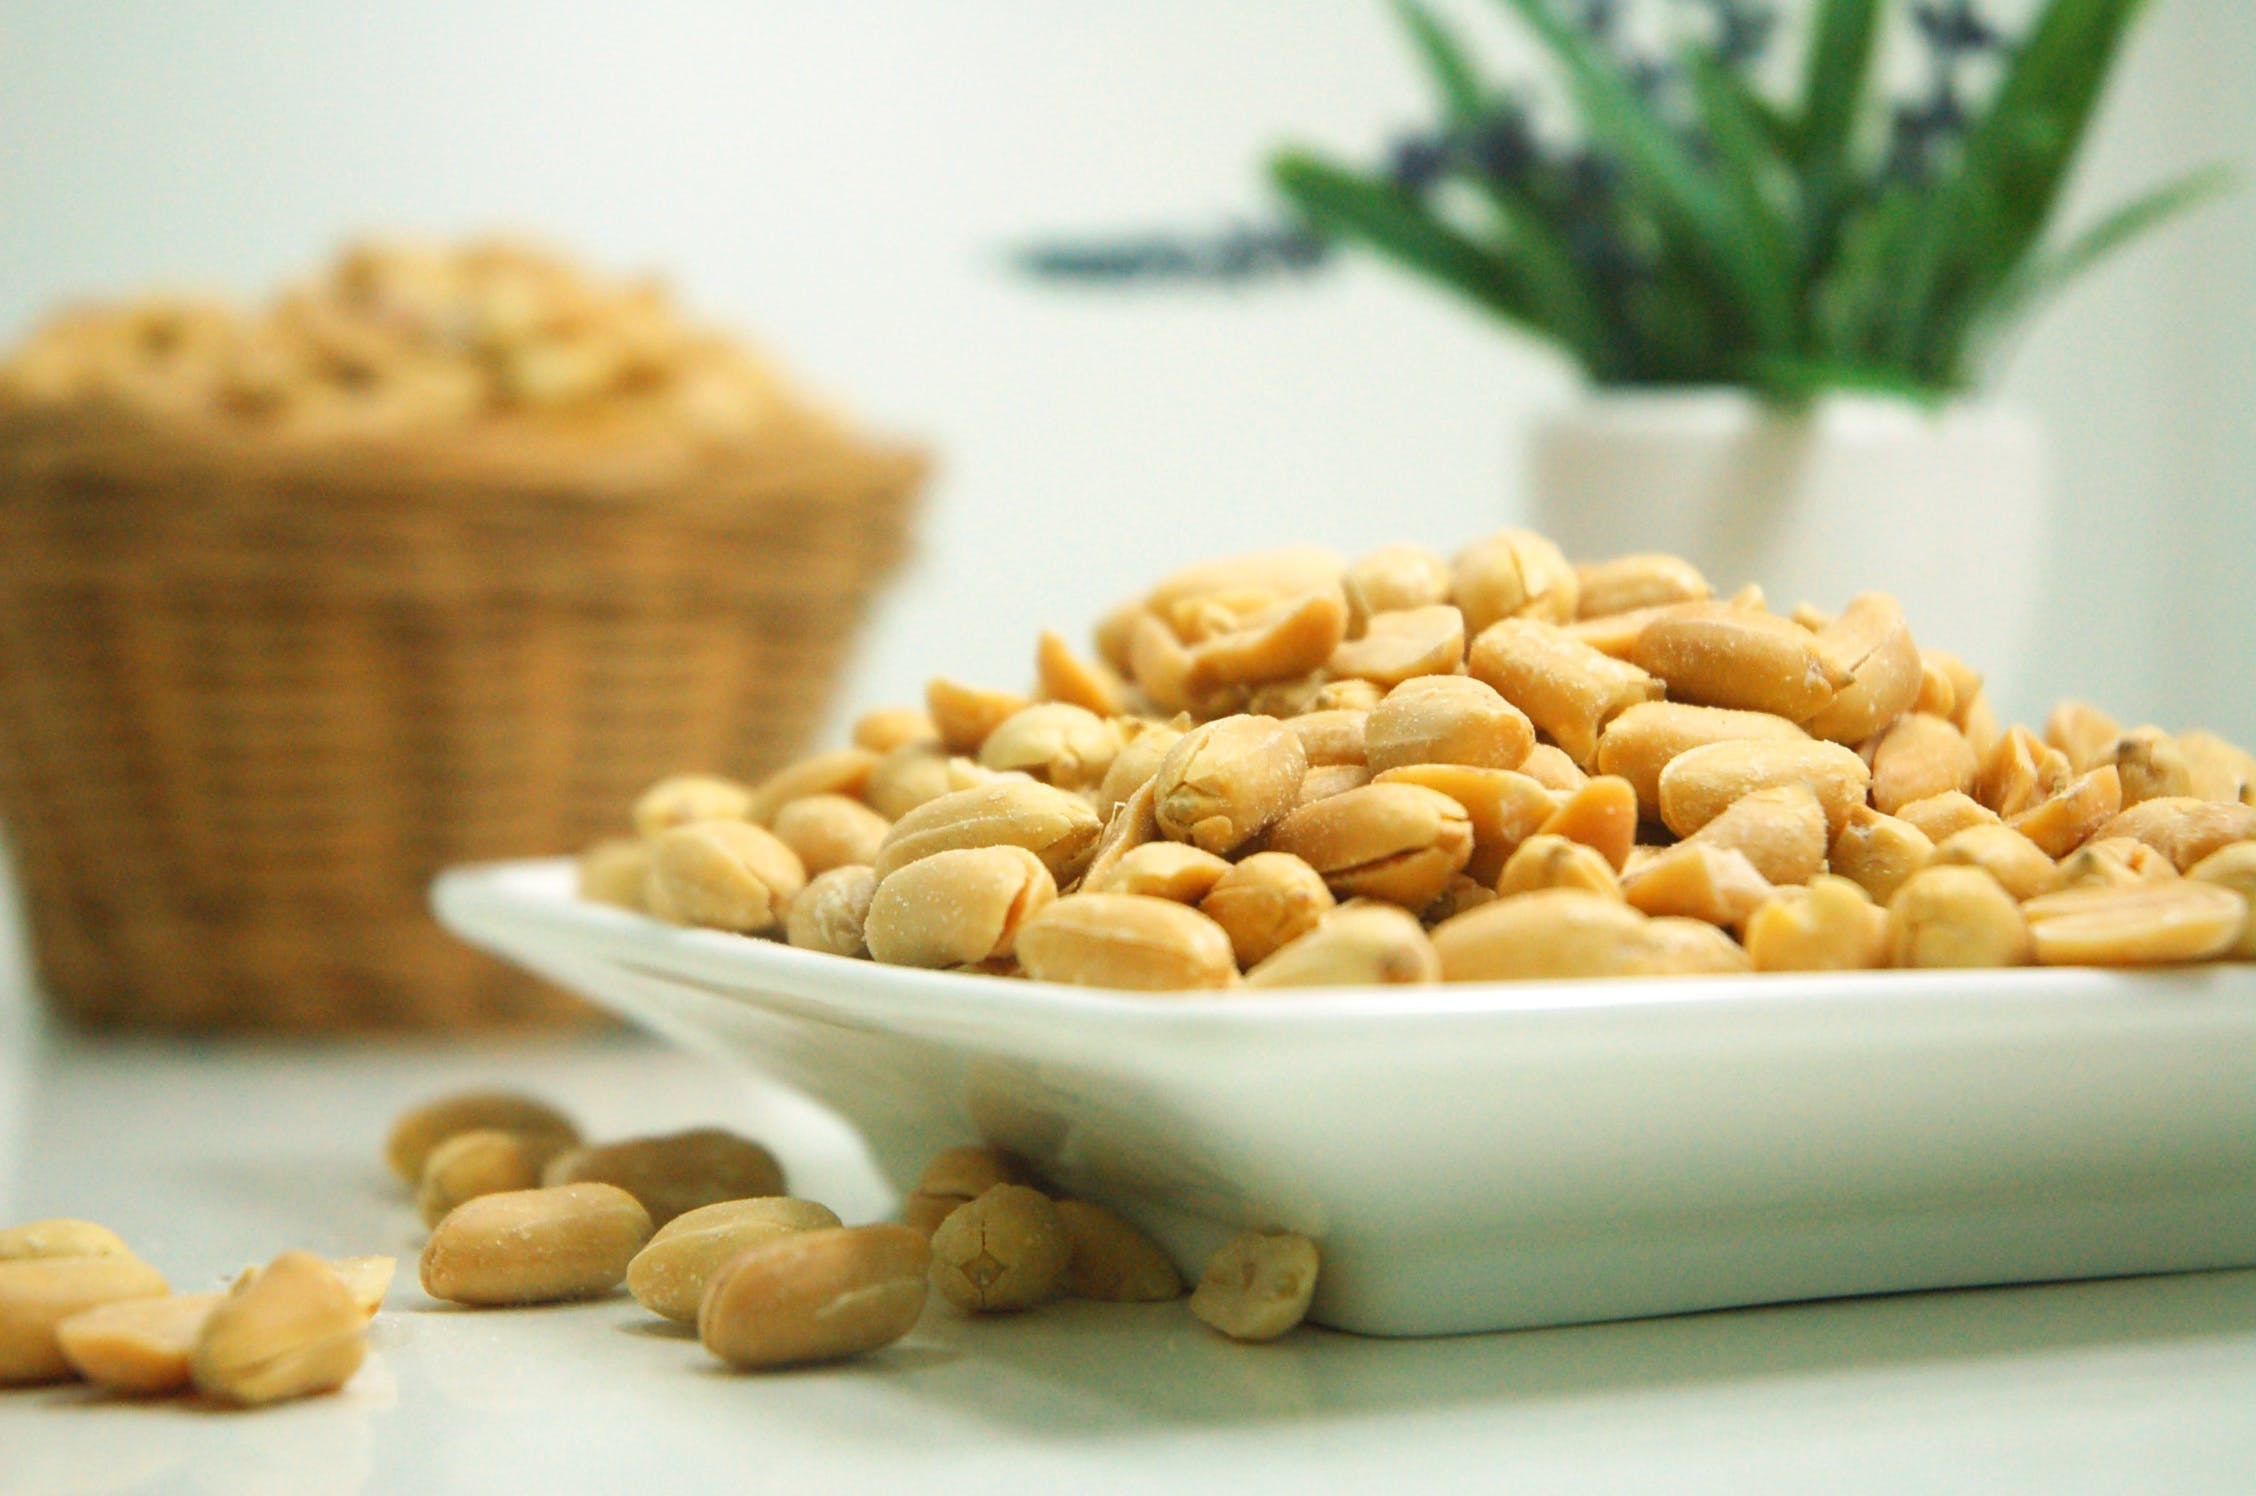 Selective Focus Photograph of Plate of Peanuts